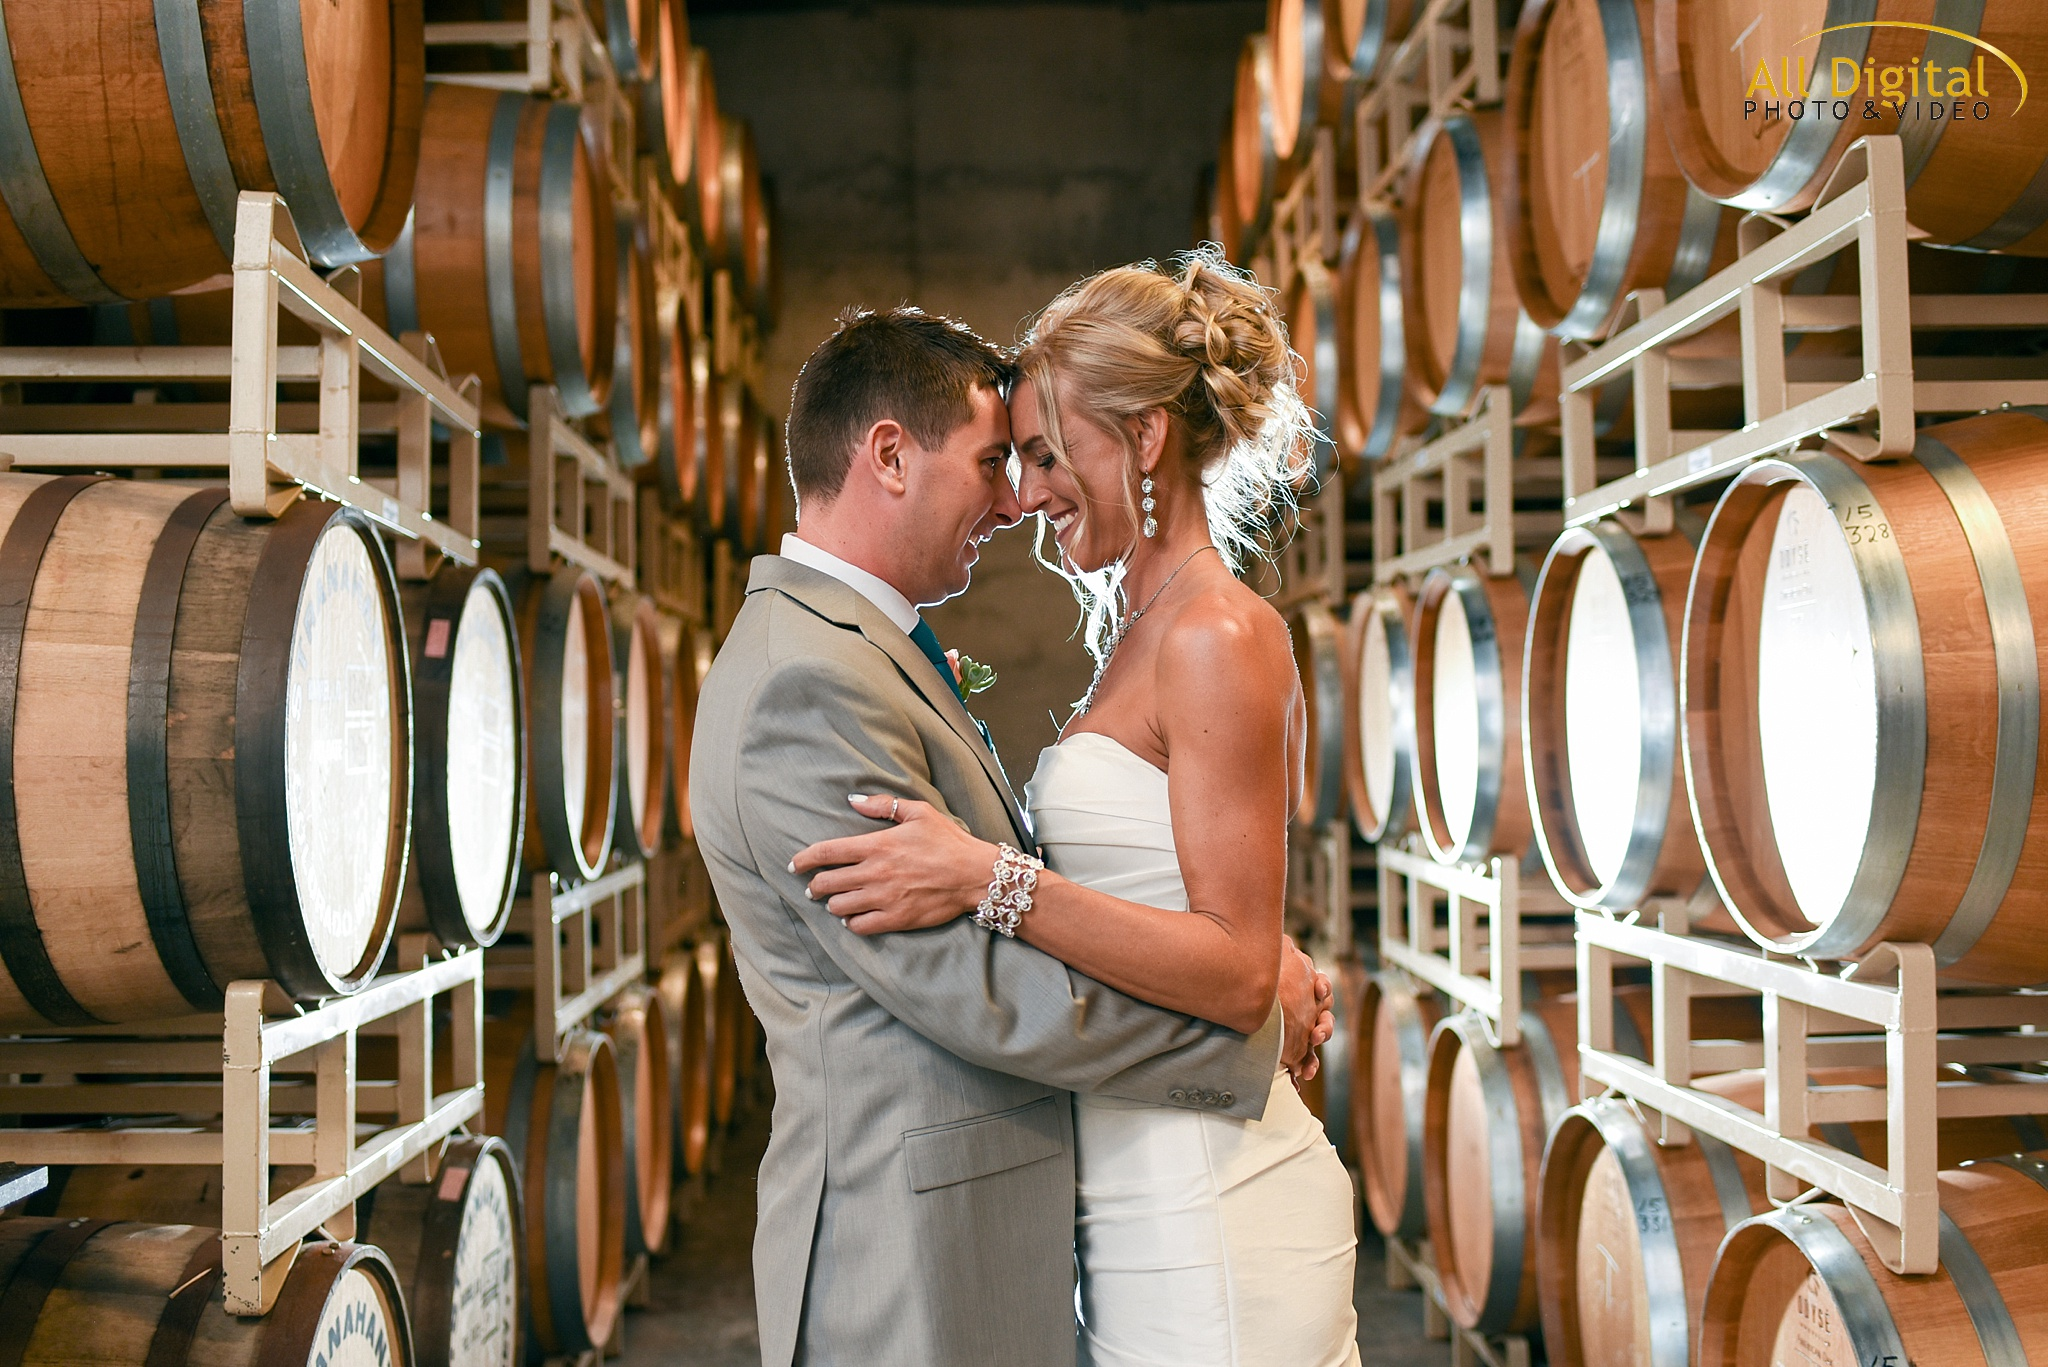 Katt & Ryan | Balisteri Vineyards Denver Wedding | Colorado Wedding Photographer